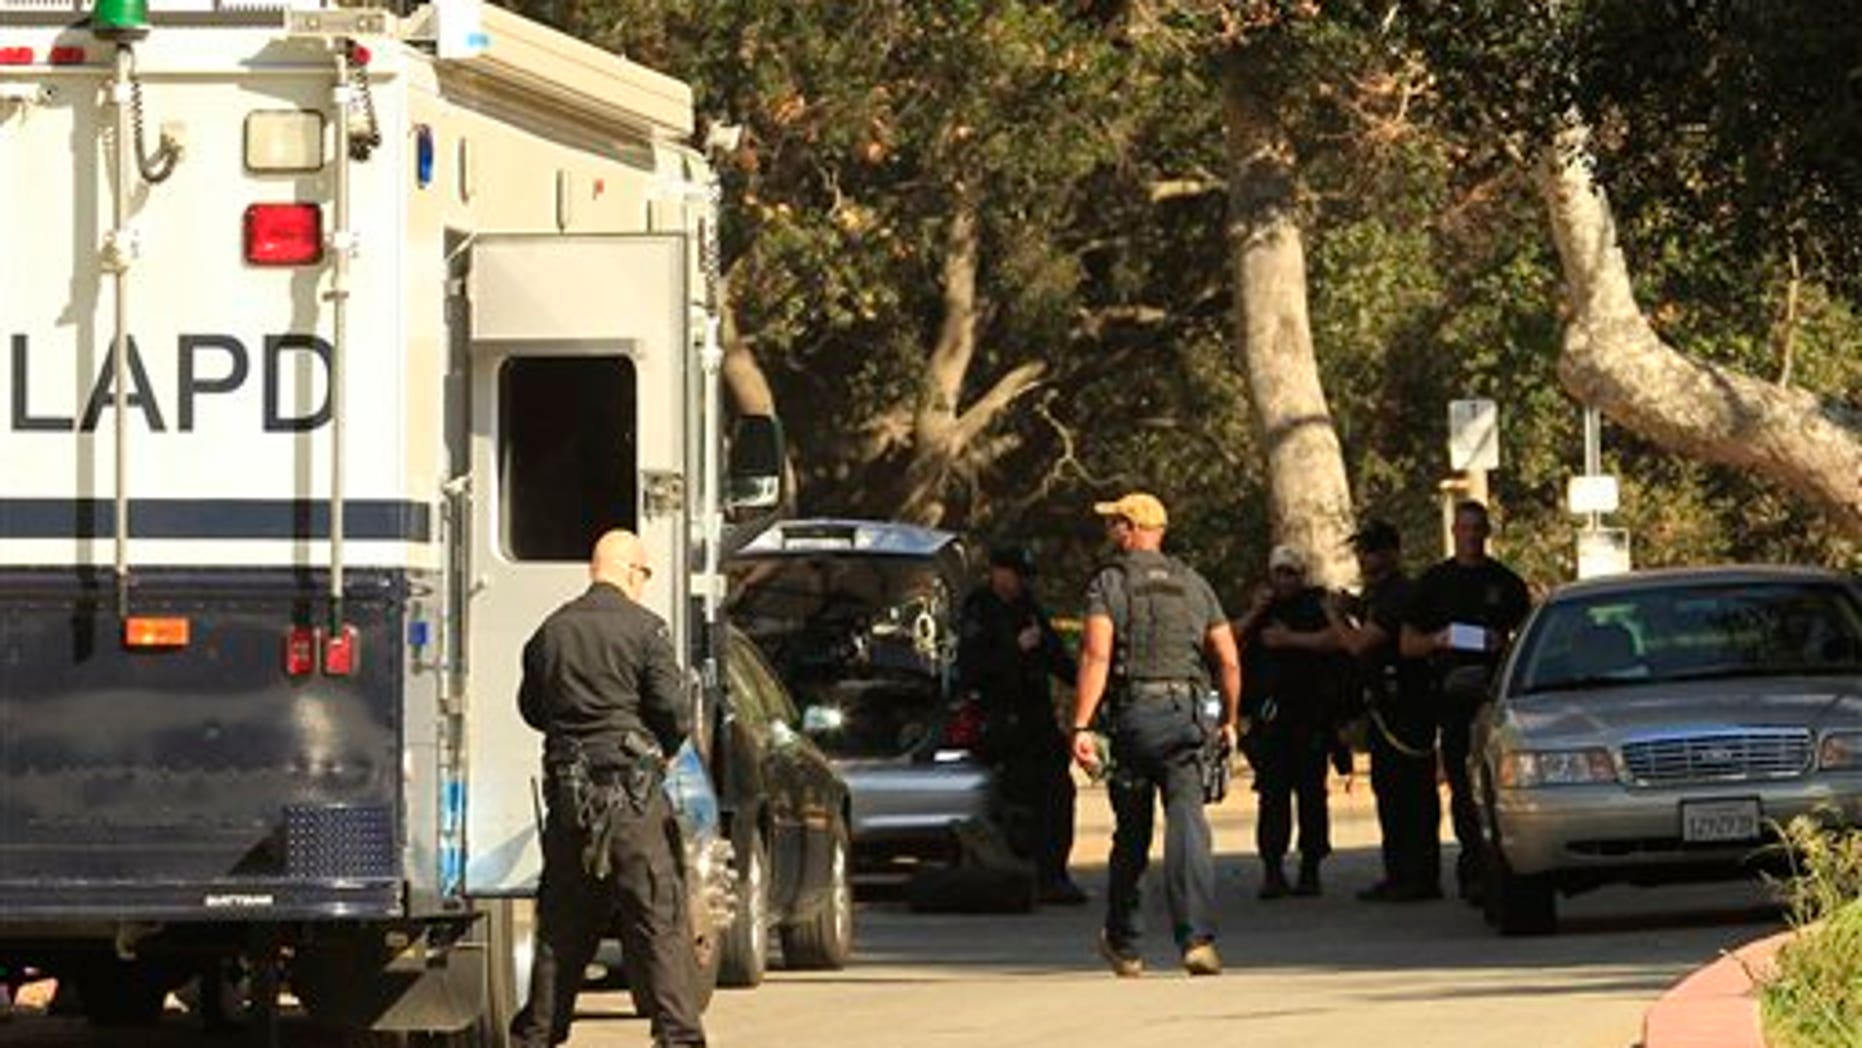 January 18, 2012: Los Angeles Police detectives work a crime scene in Griffith Park off Canyon Drive after a human head was discovered off a nearby trail Tuesday by two women walking their dogs in Los Angeles. A human hand has since been discovered. (AP Photo/Los Angeles Times, Al Seib, Pool)